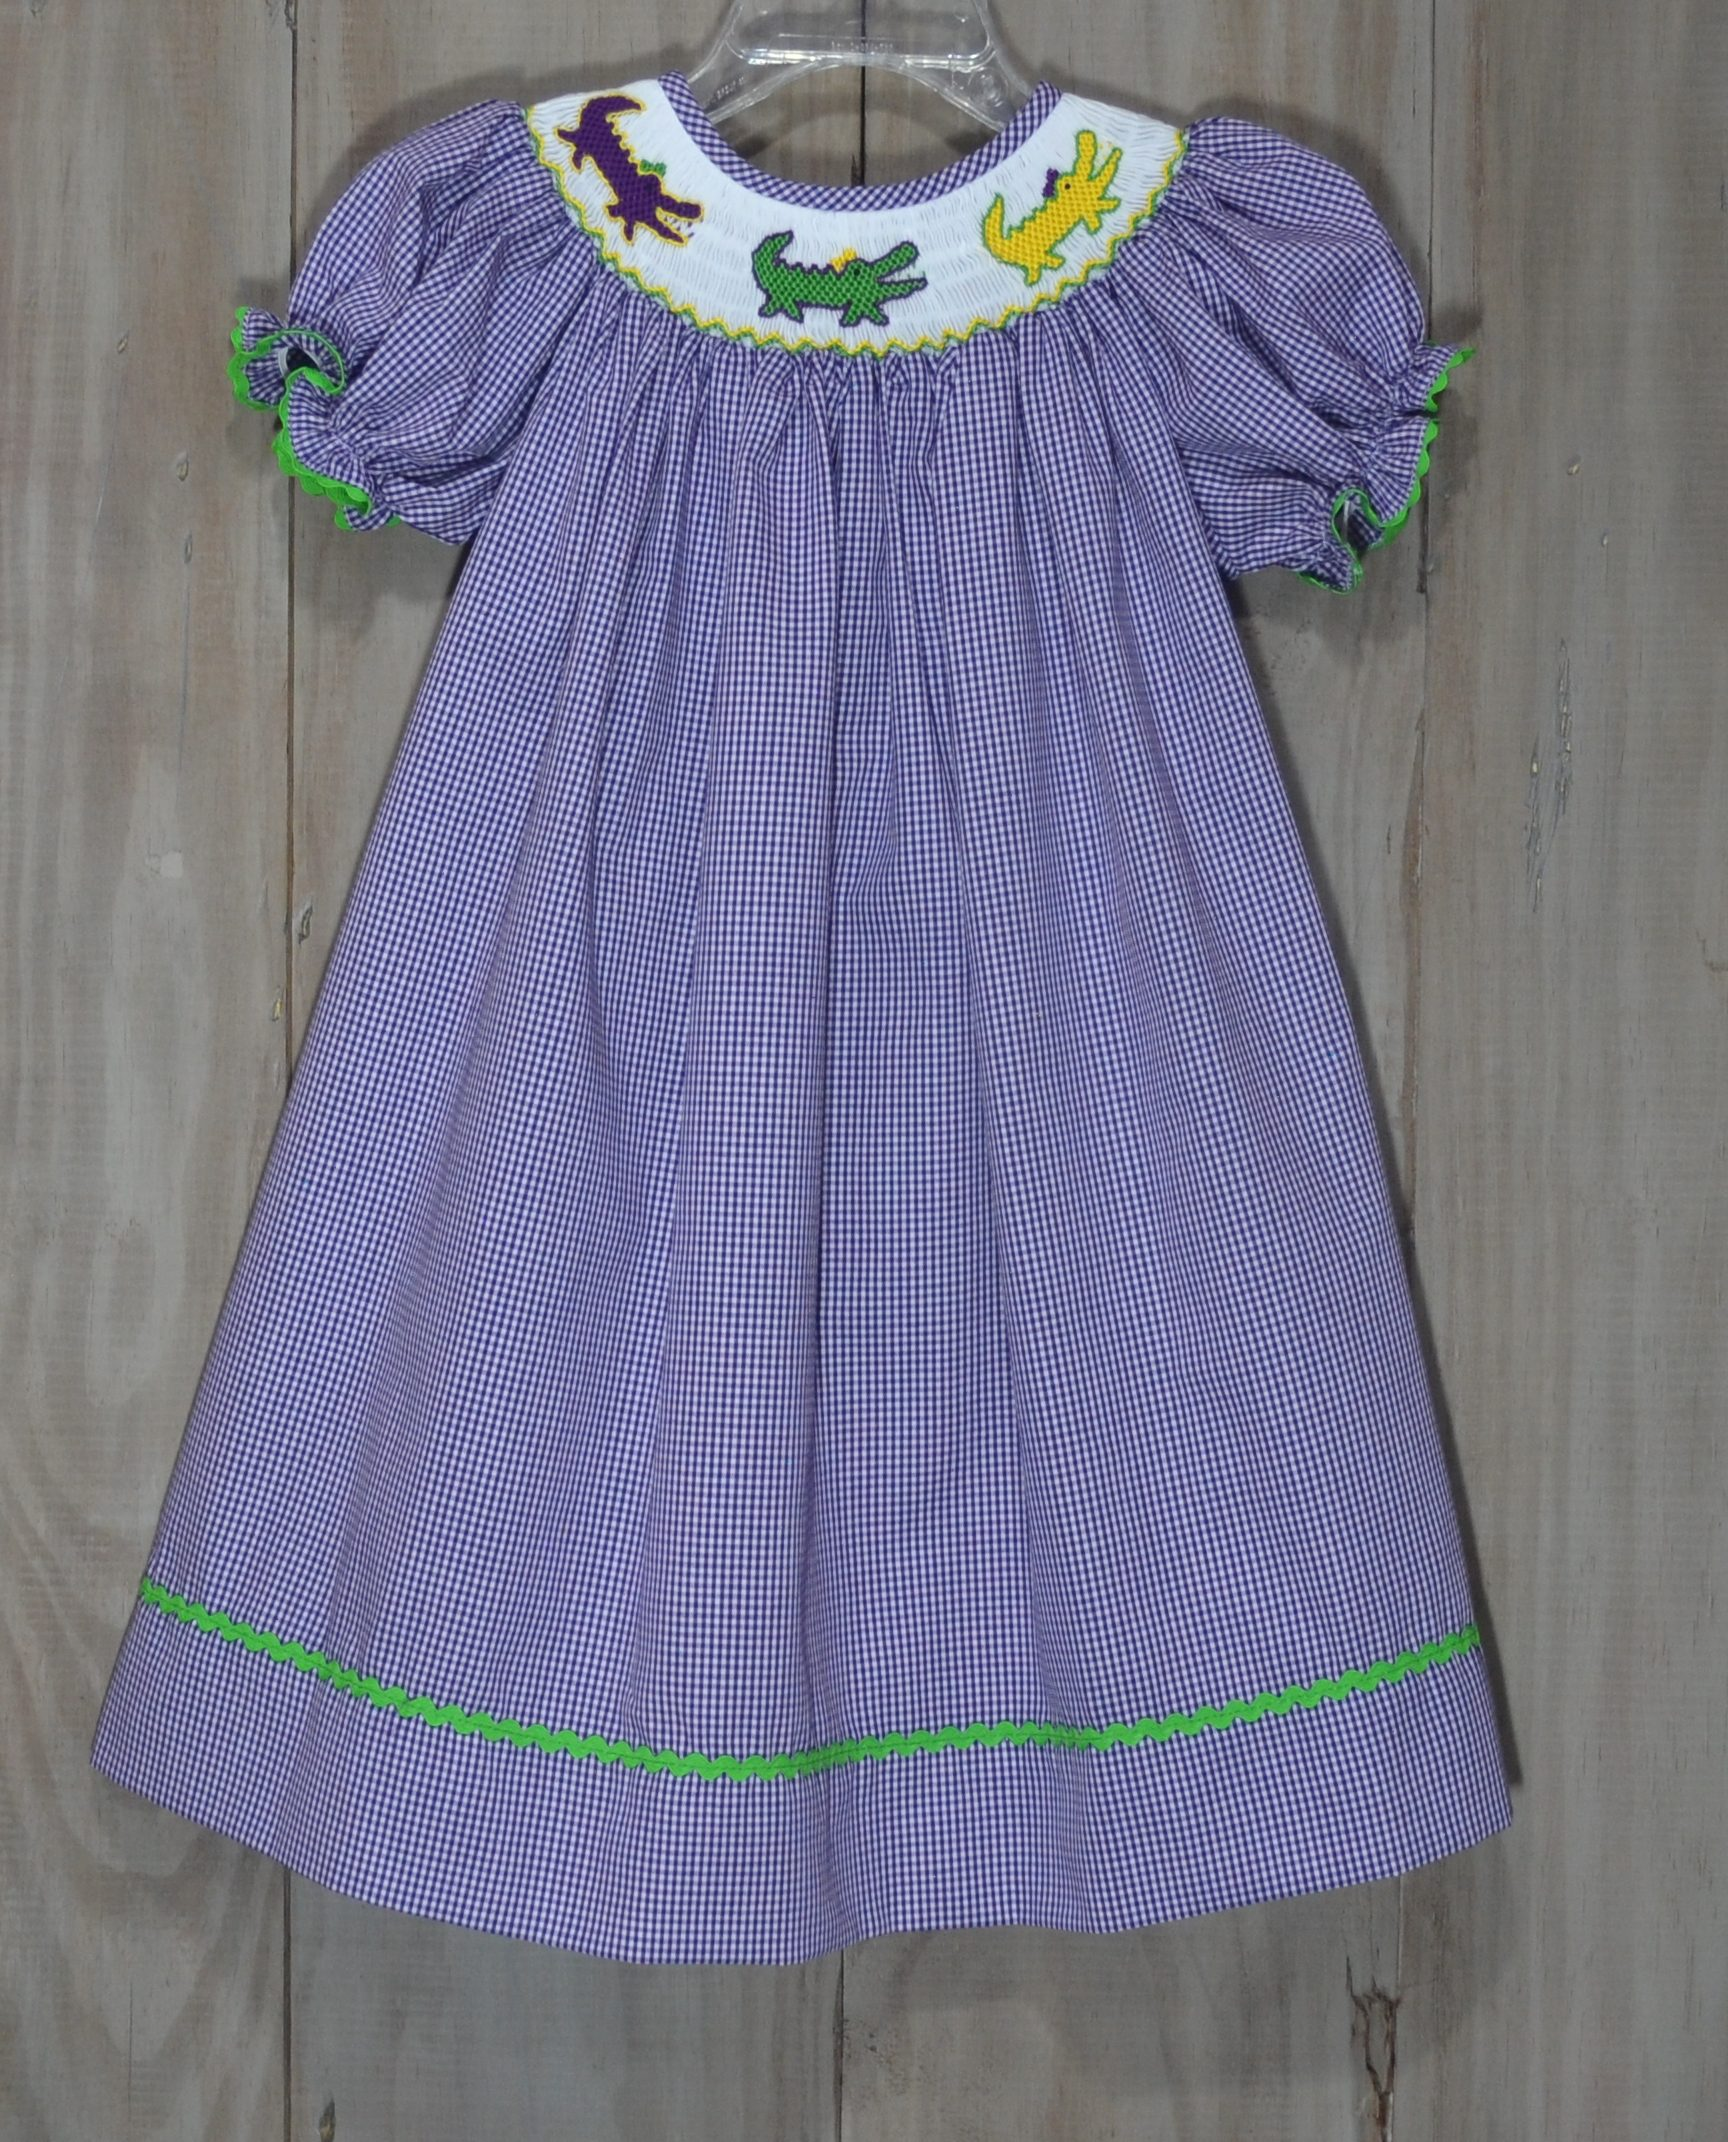 Purple Gingham Bi Dress Smocked With Alligators In The Mardi Gras Colors Of Green